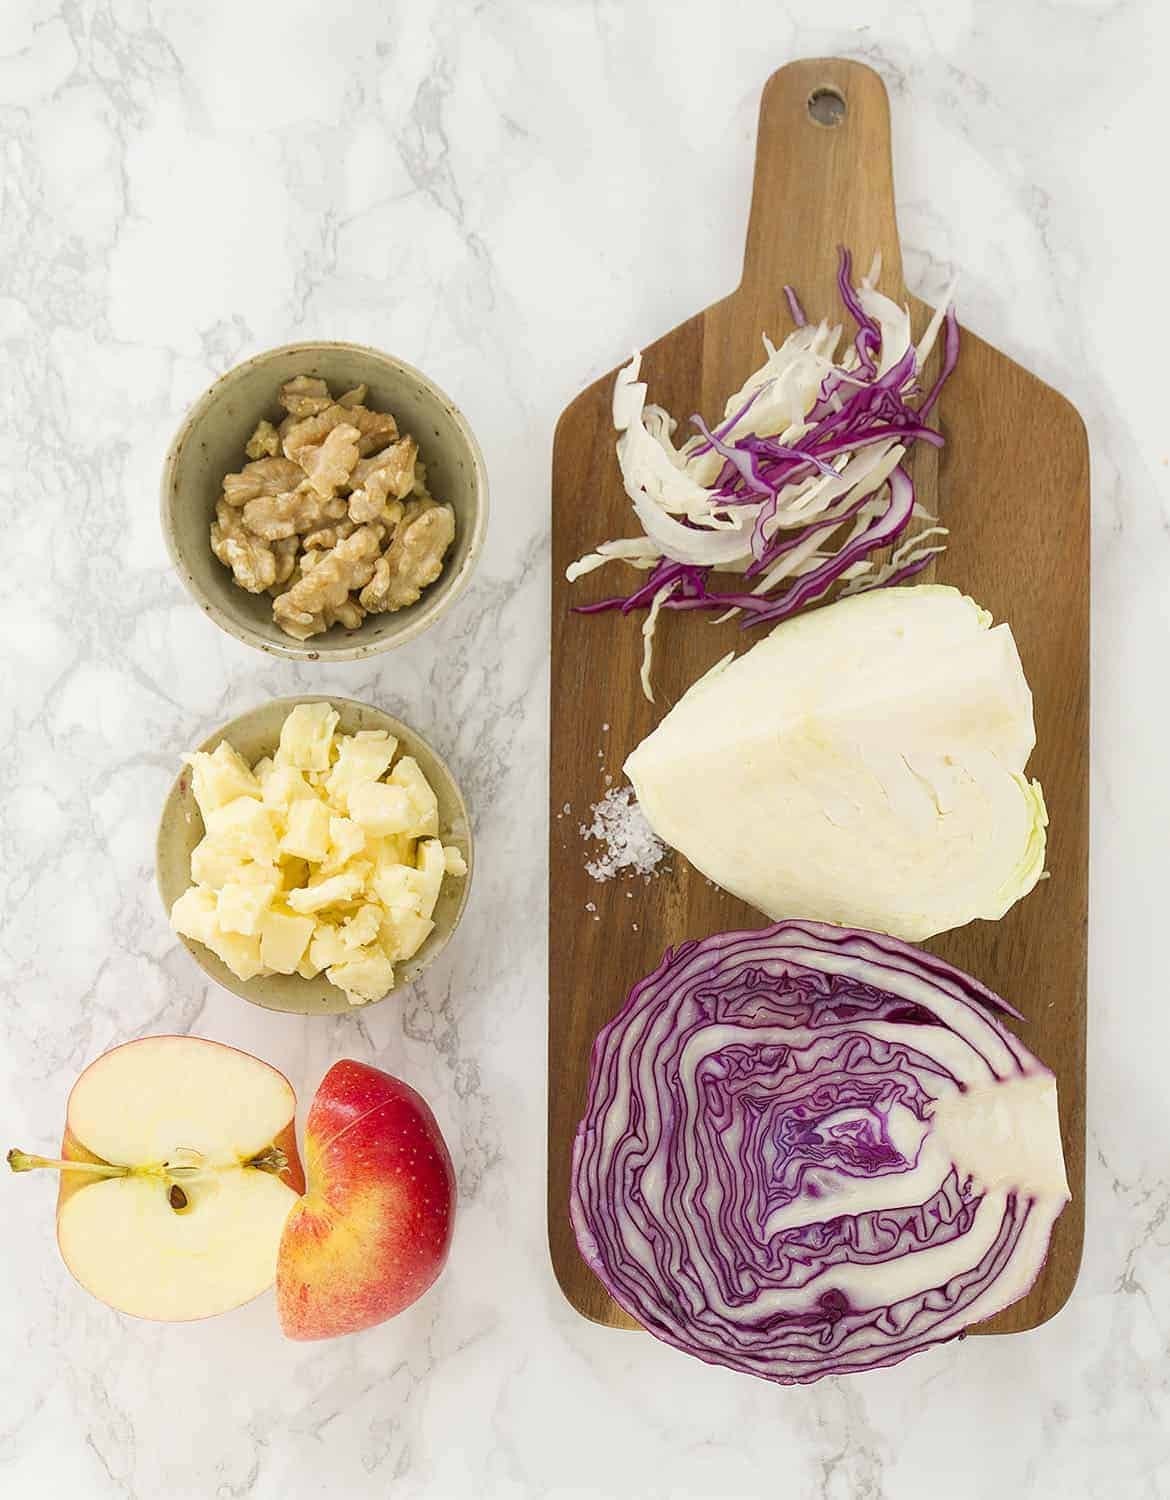 a few fresh and crunchy ingredients for this good and healthy cabbage and apple slaw.